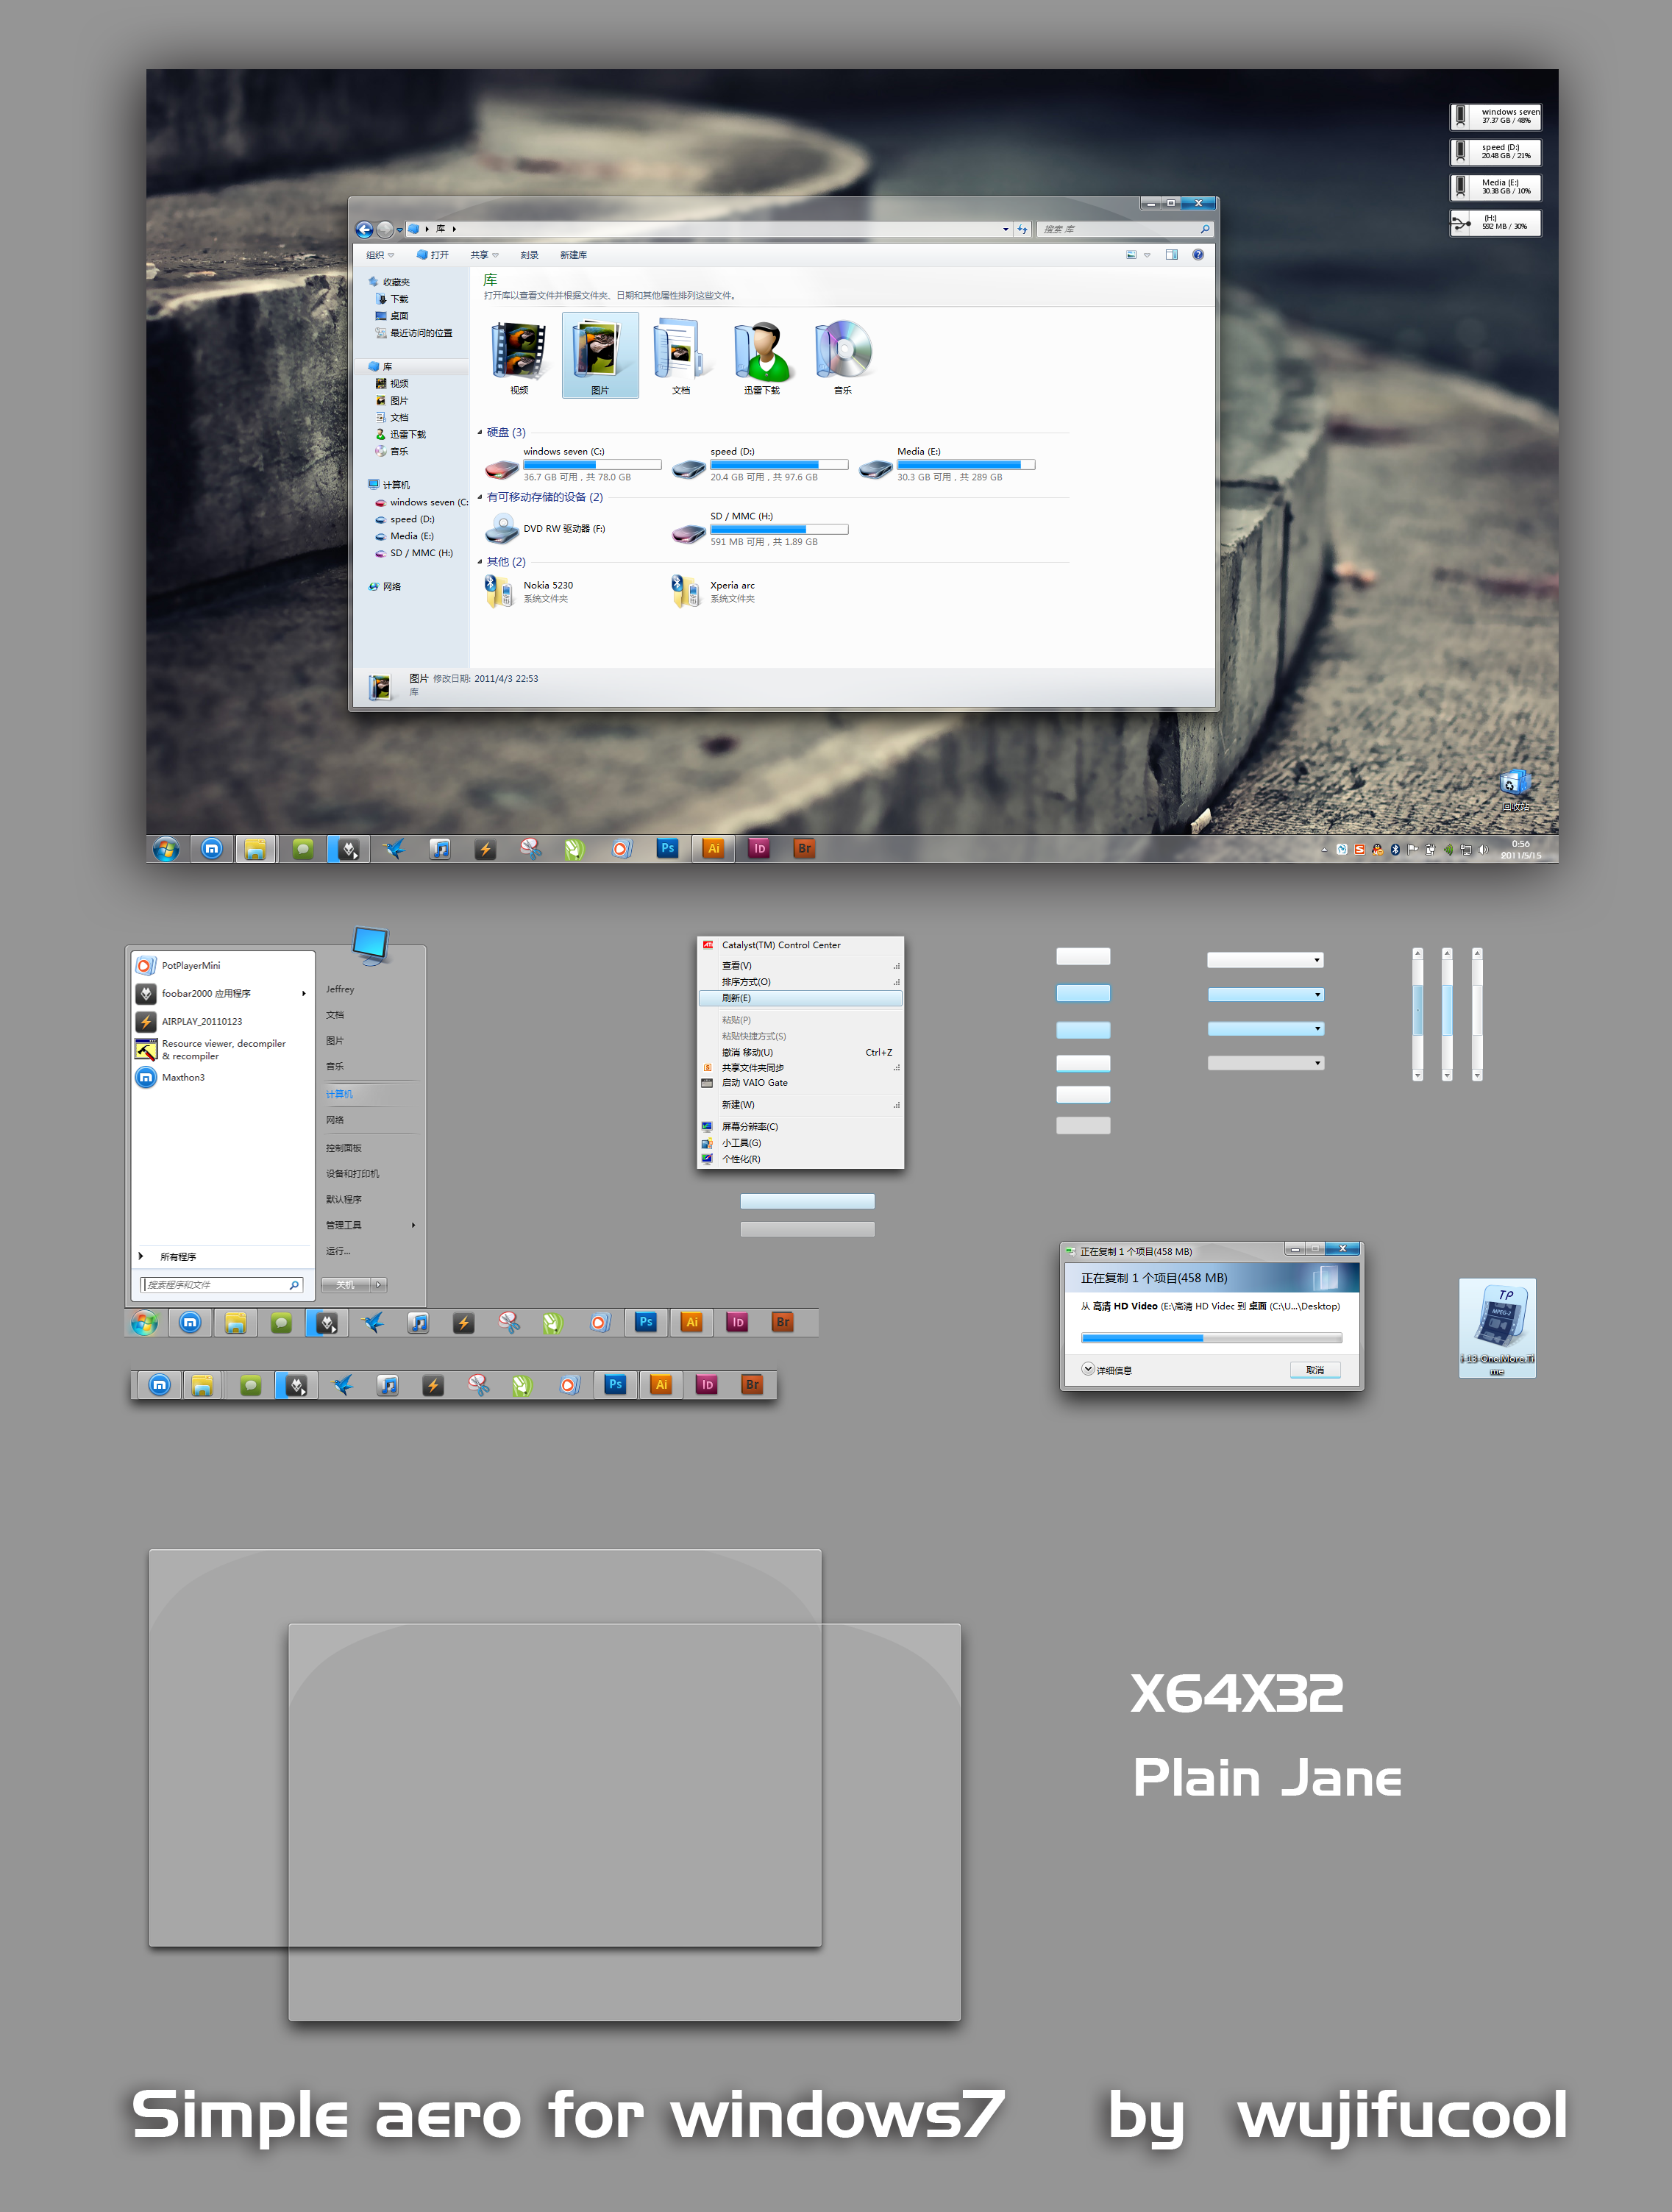 Simple aero for windows7 by wujifucool